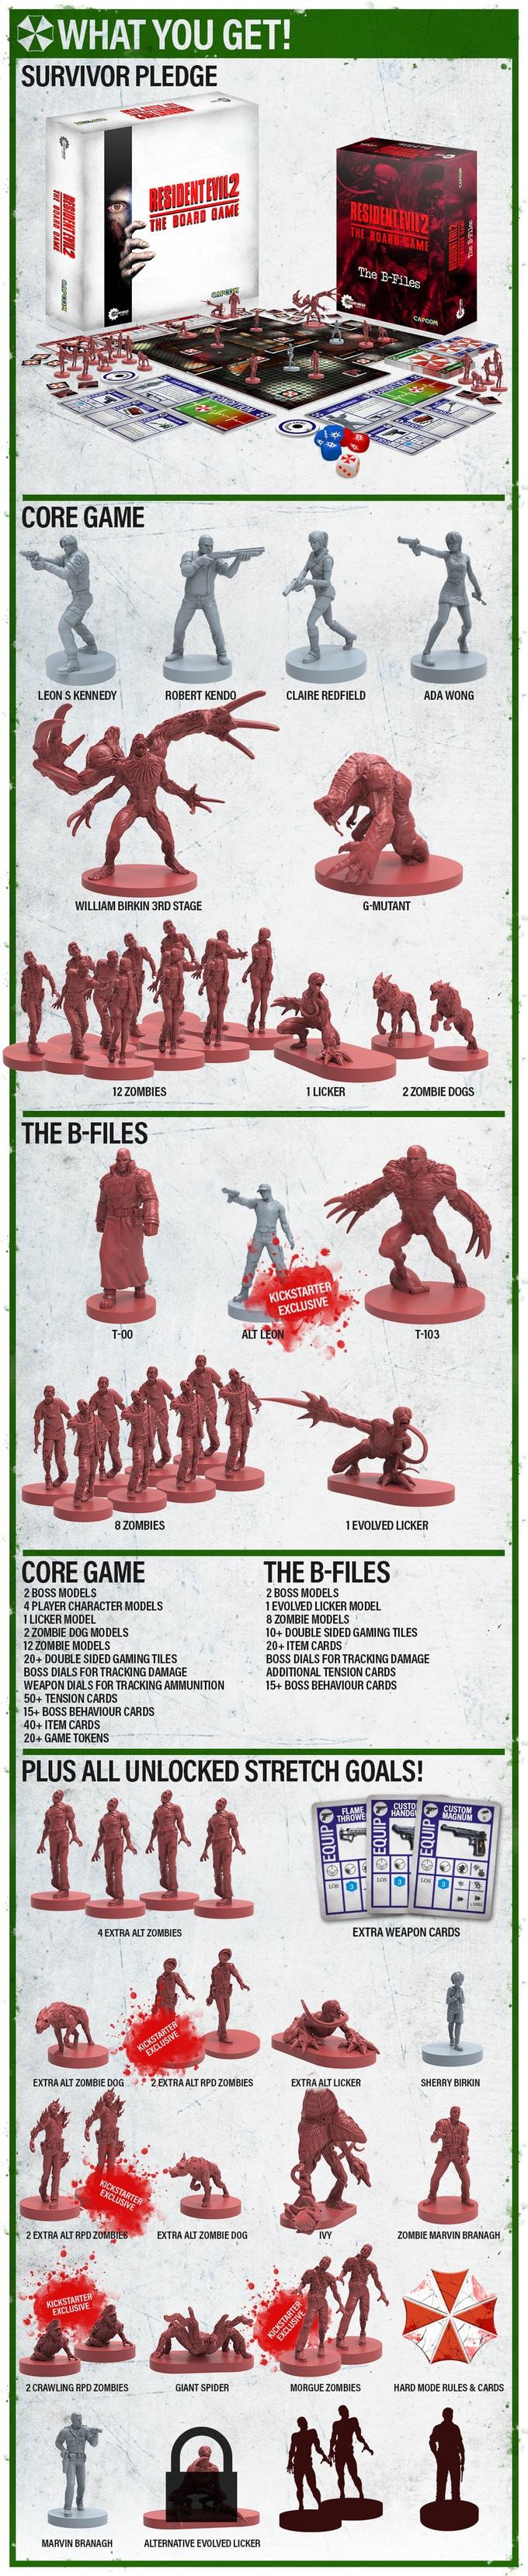 RE2_Boardgame2.jpg